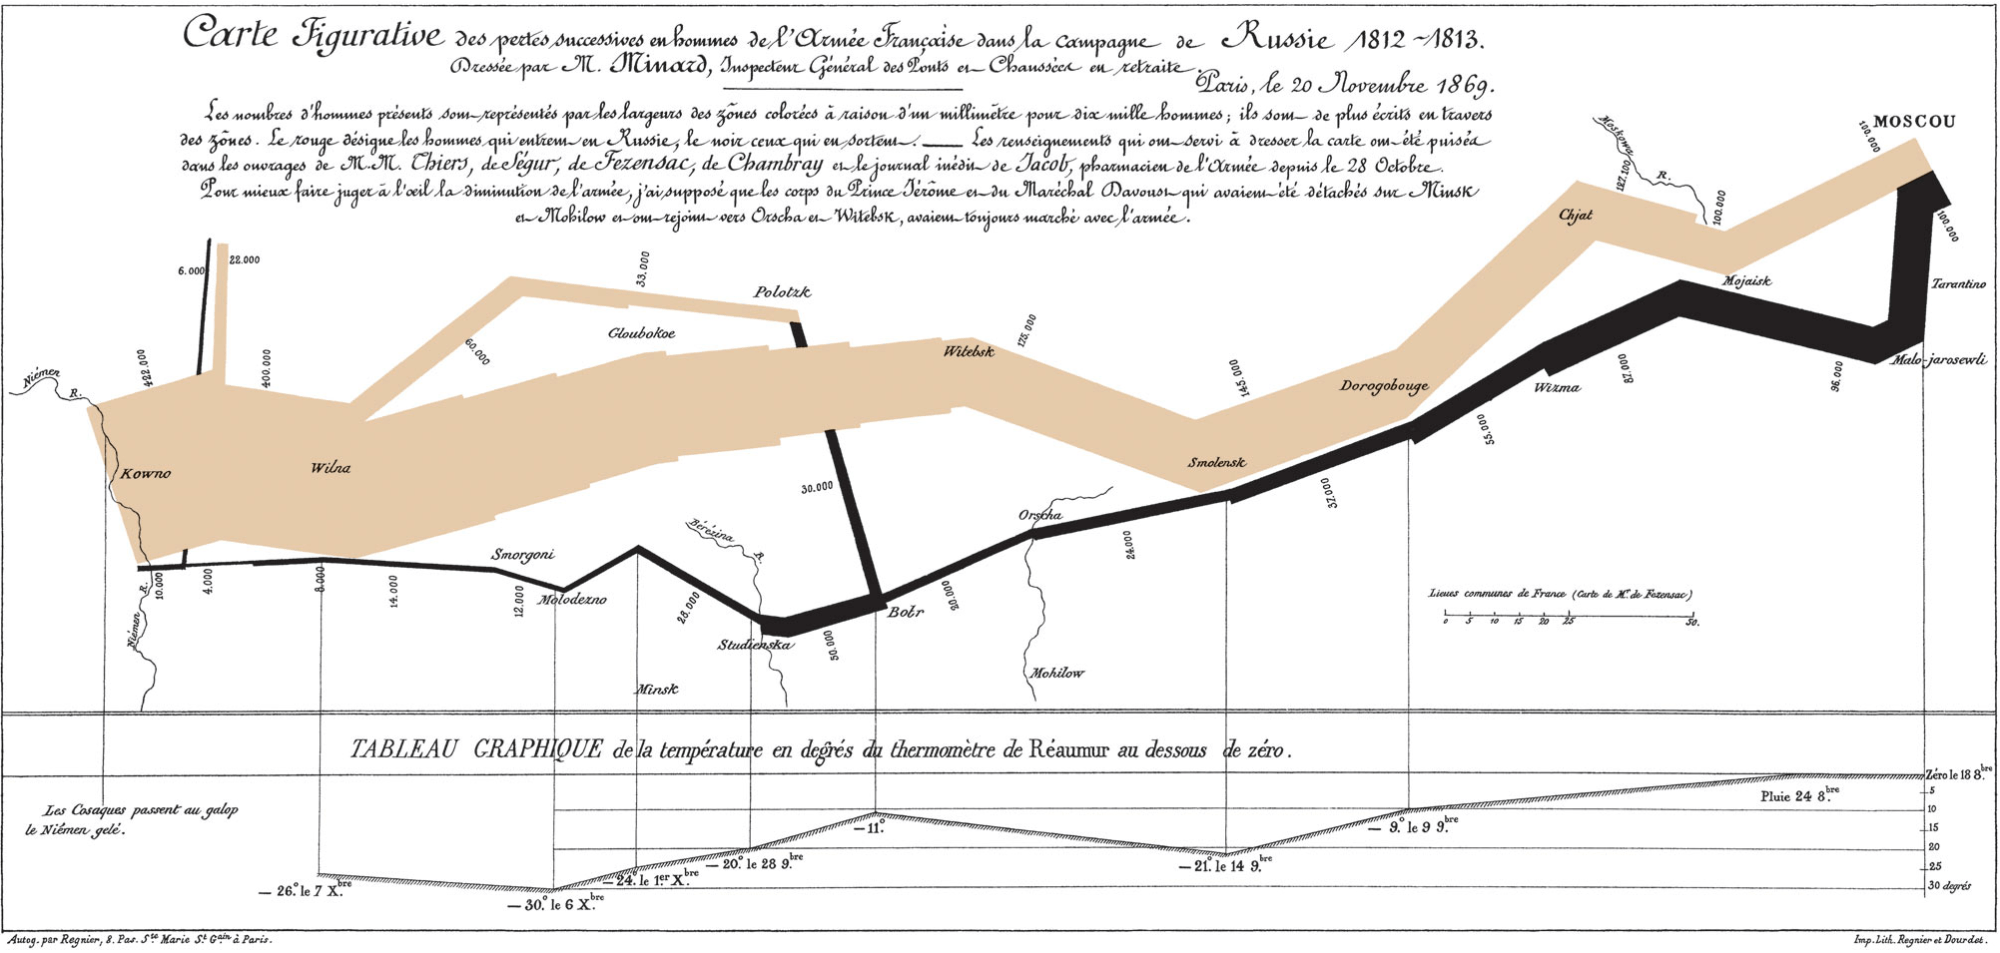 hight resolution of minard s classic diagram of napoleon s invasion of russia using the feature now named after sankey